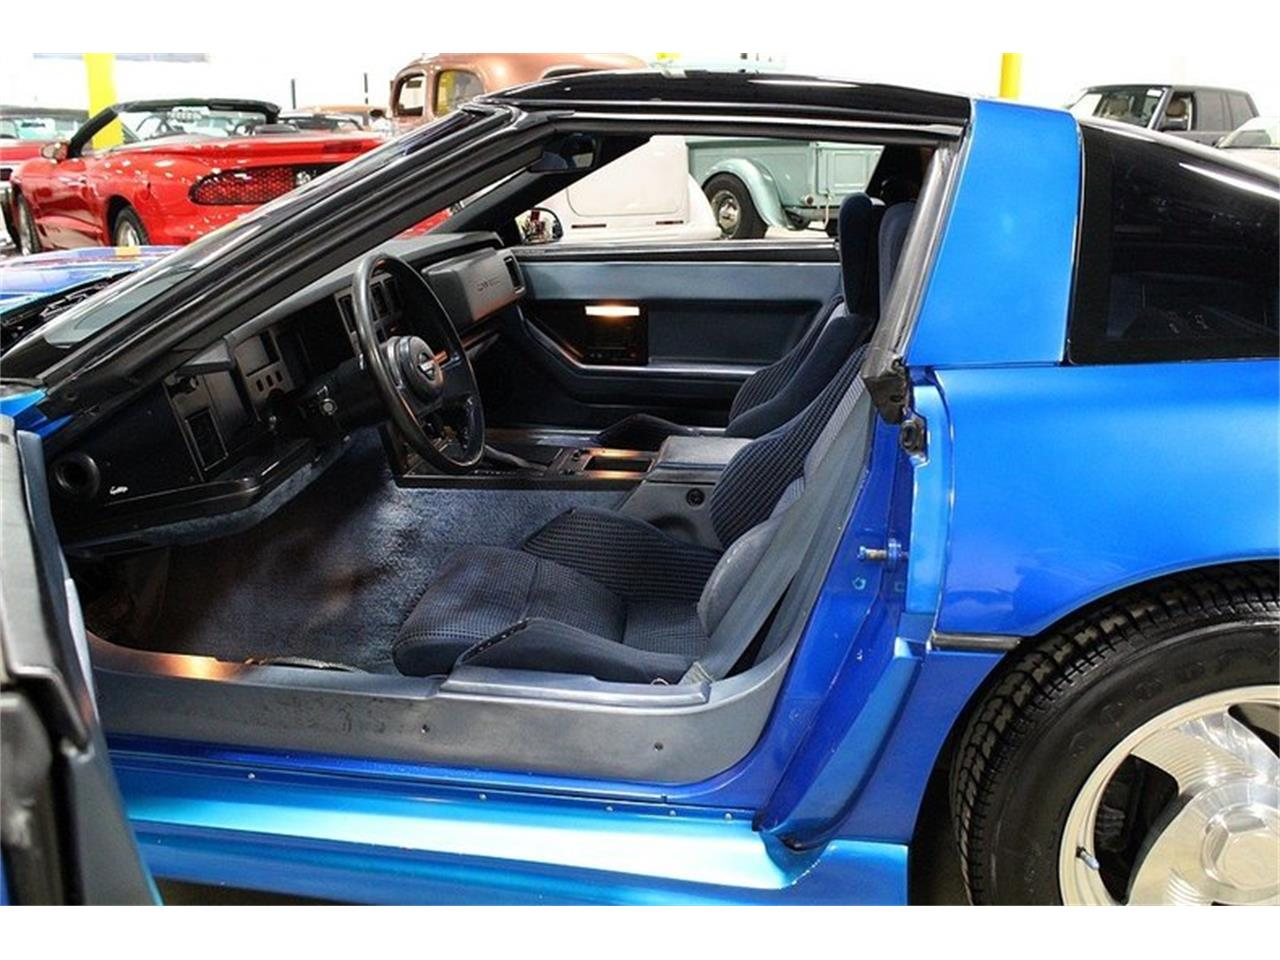 Large Picture of 1985 Chevrolet Corvette - $9,900.00 Offered by GR Auto Gallery - LBV1